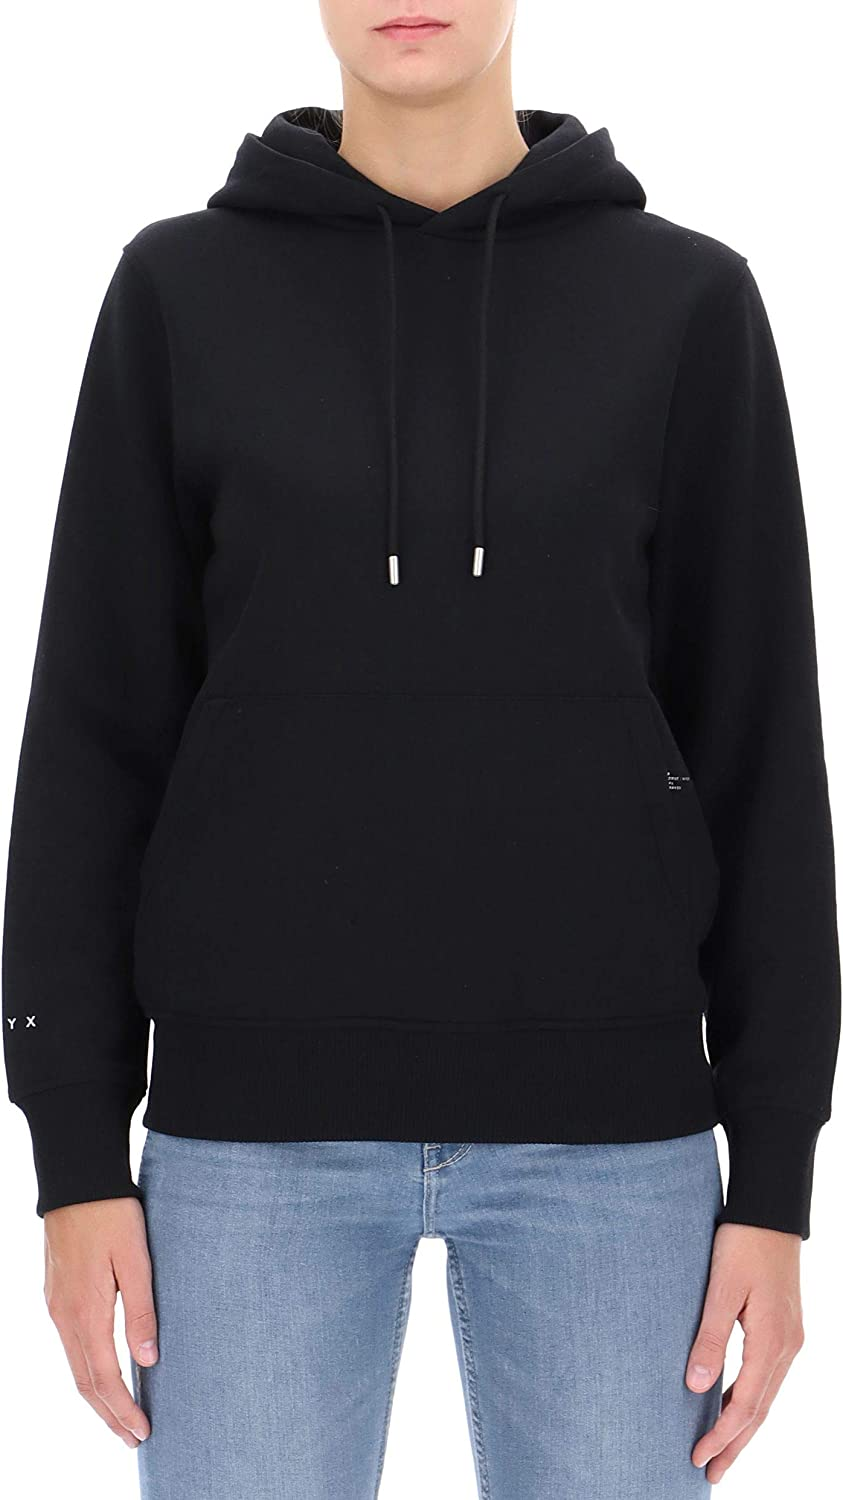 ALYX Women's AVWSW0003A001 Black Cotton Sweatshirt